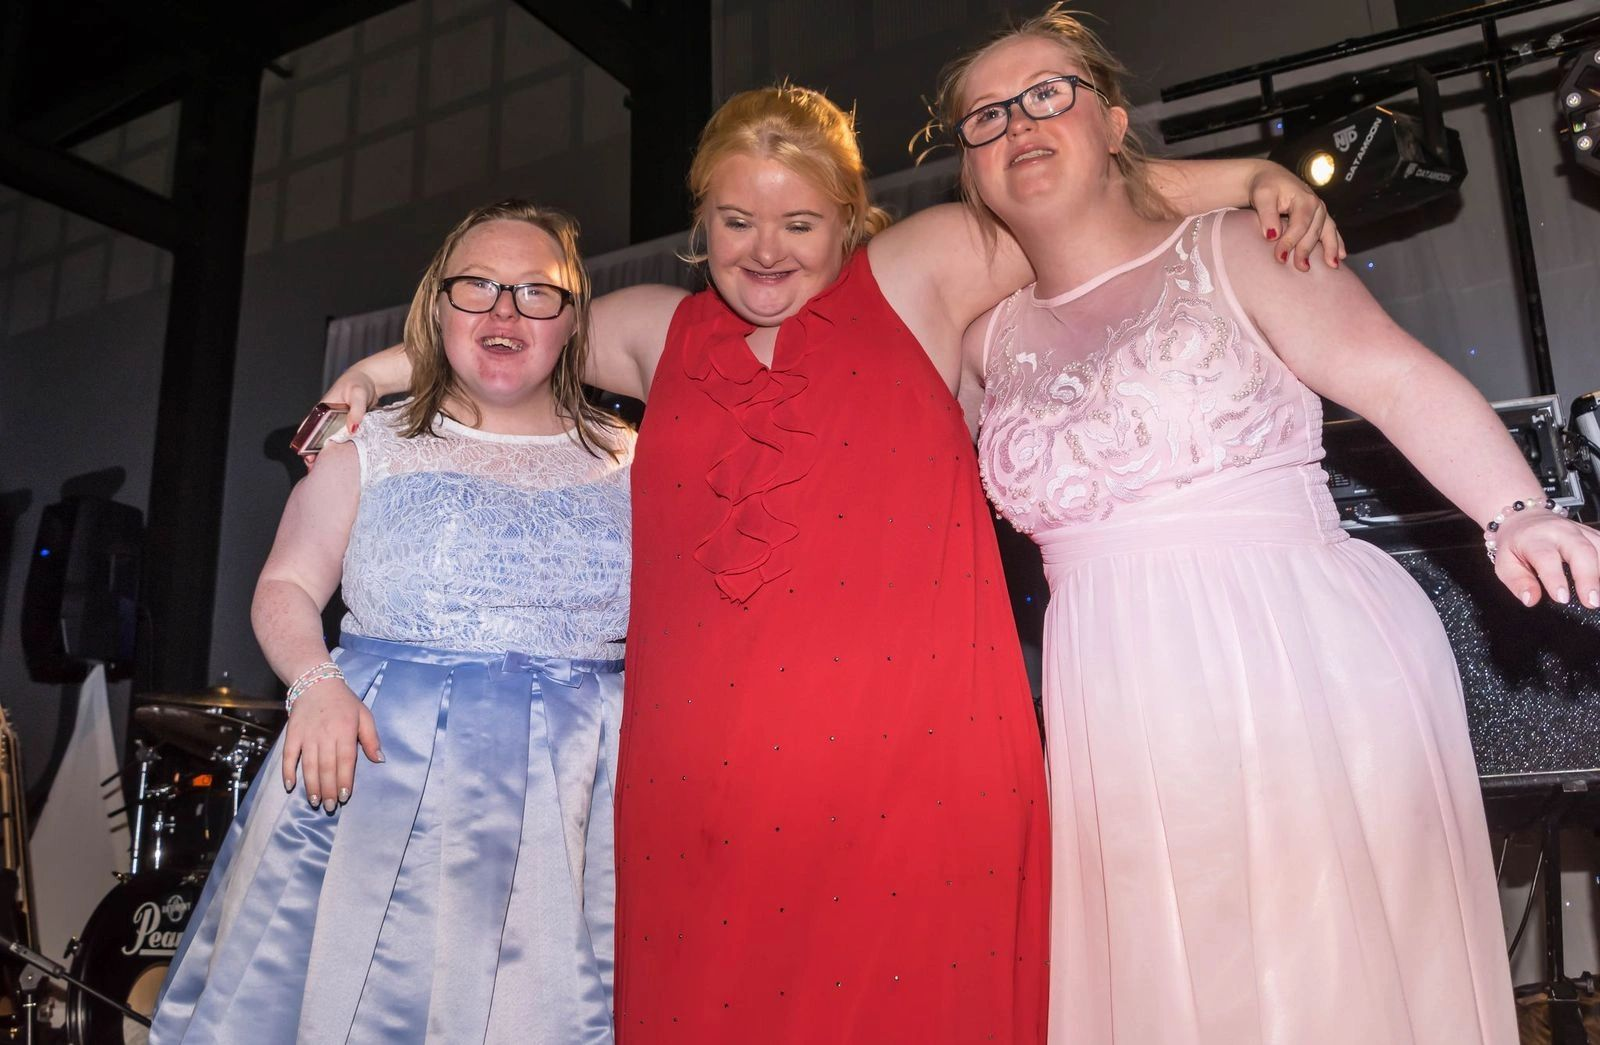 Three young women with Downs Syndrome smiling